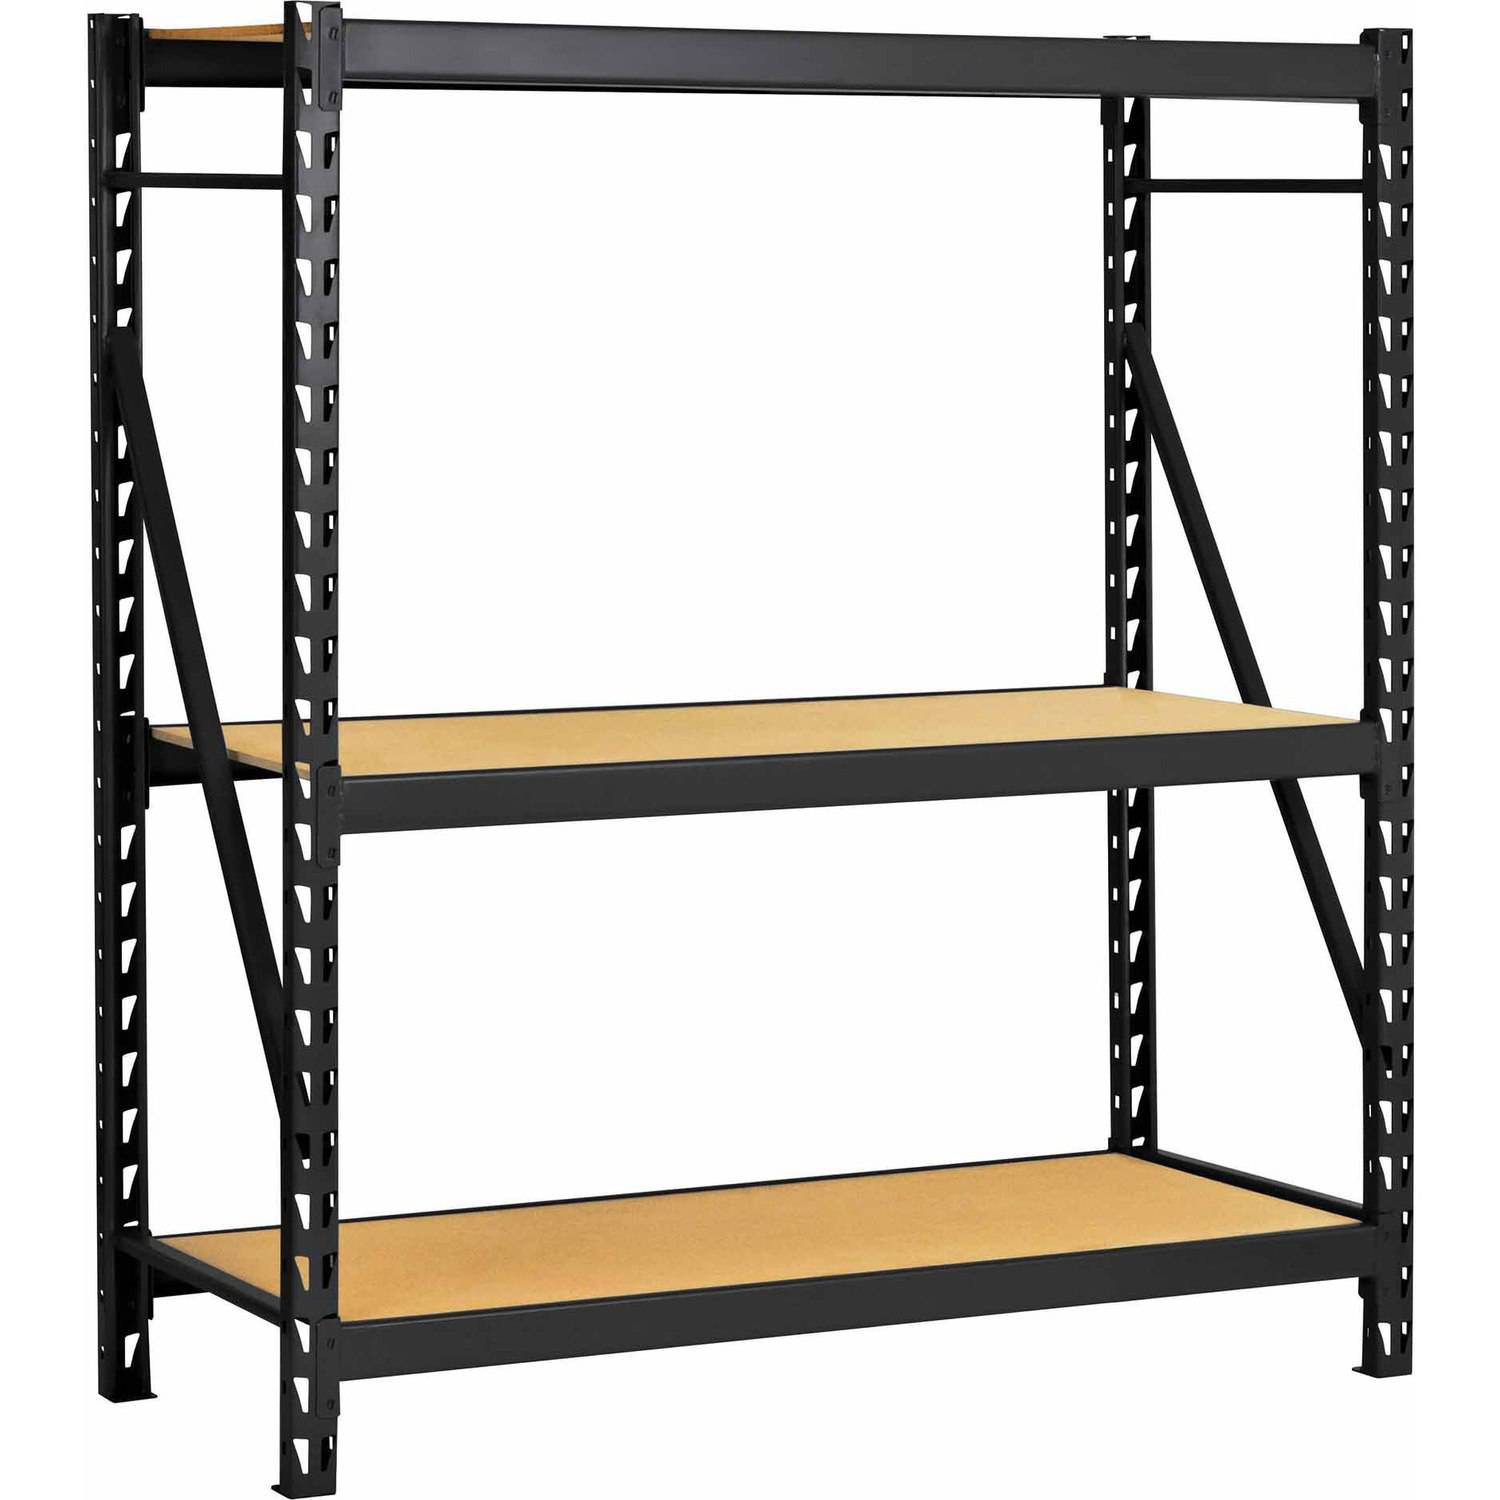 Edsal Welded Steel Rack, Black, ERZ601866PB3